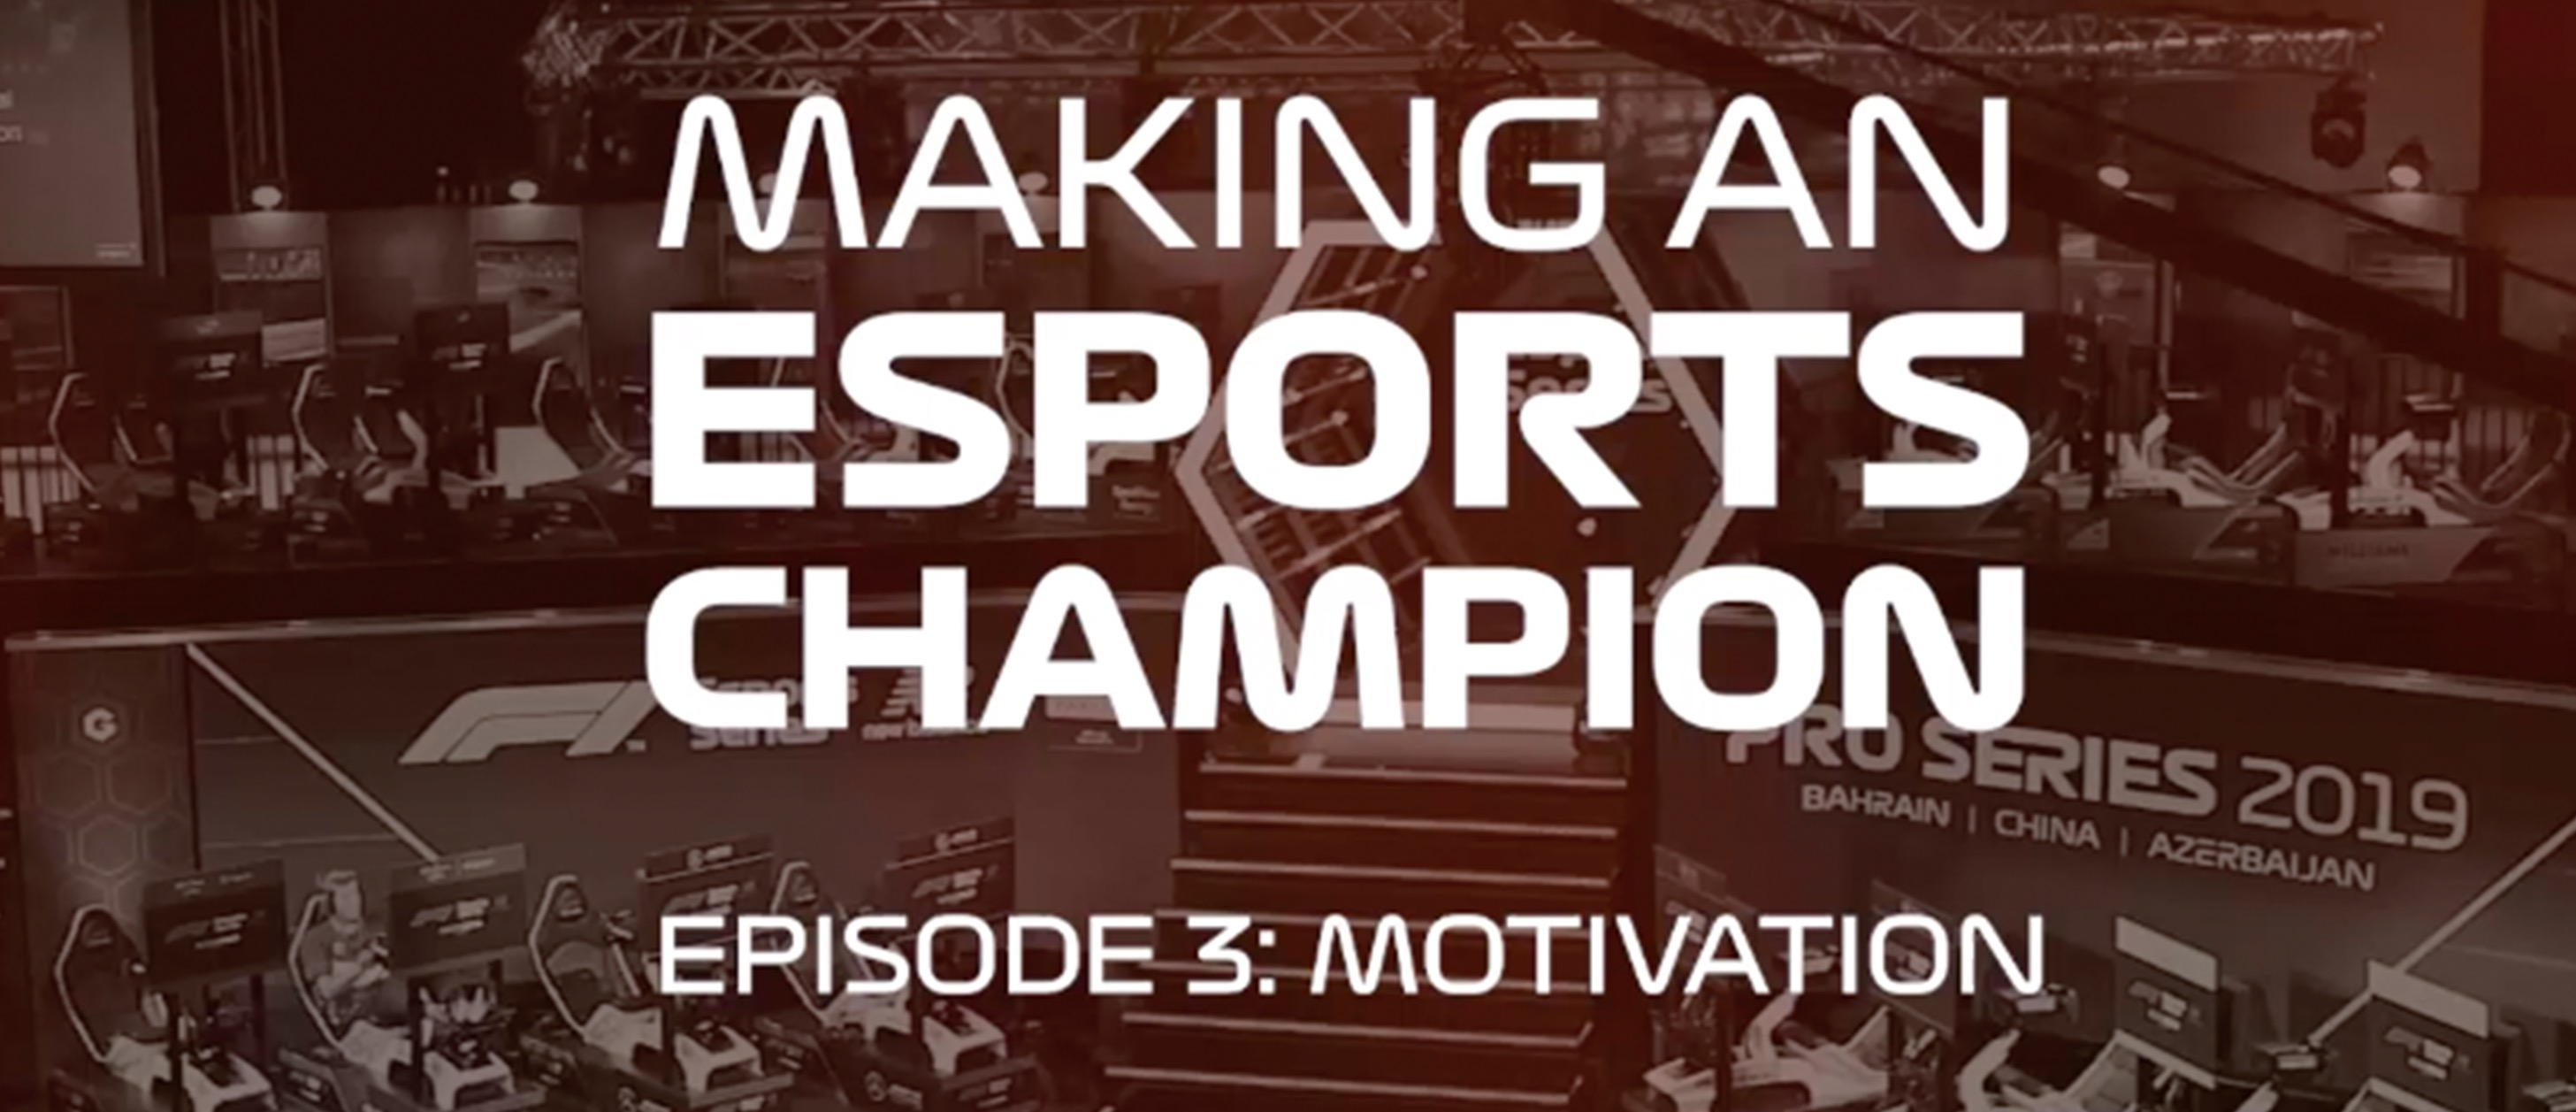 Coming to a Screen Near You: Making an Esports Champion, Episode 3